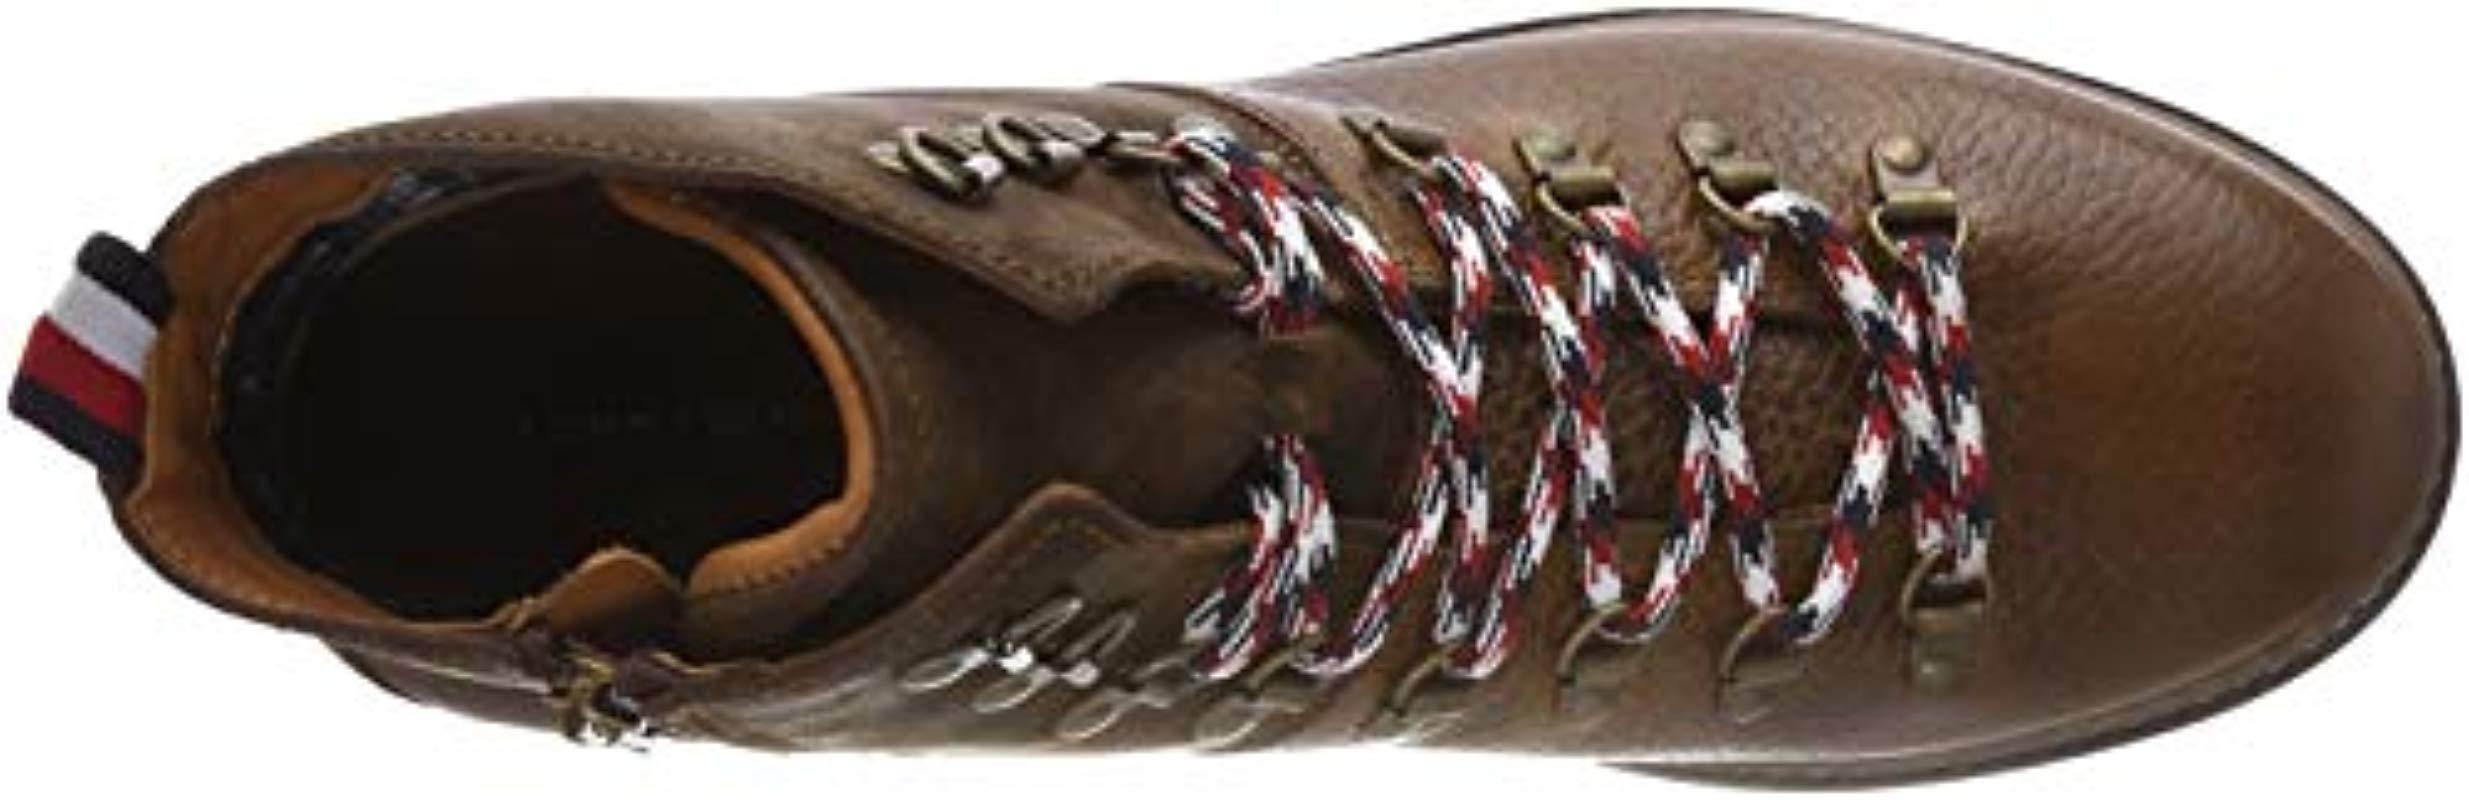 bca252a37d4a31 Tommy Hilfiger - Brown Elevated Outdoor Hiking Boot Combat for Men - Lyst.  View fullscreen